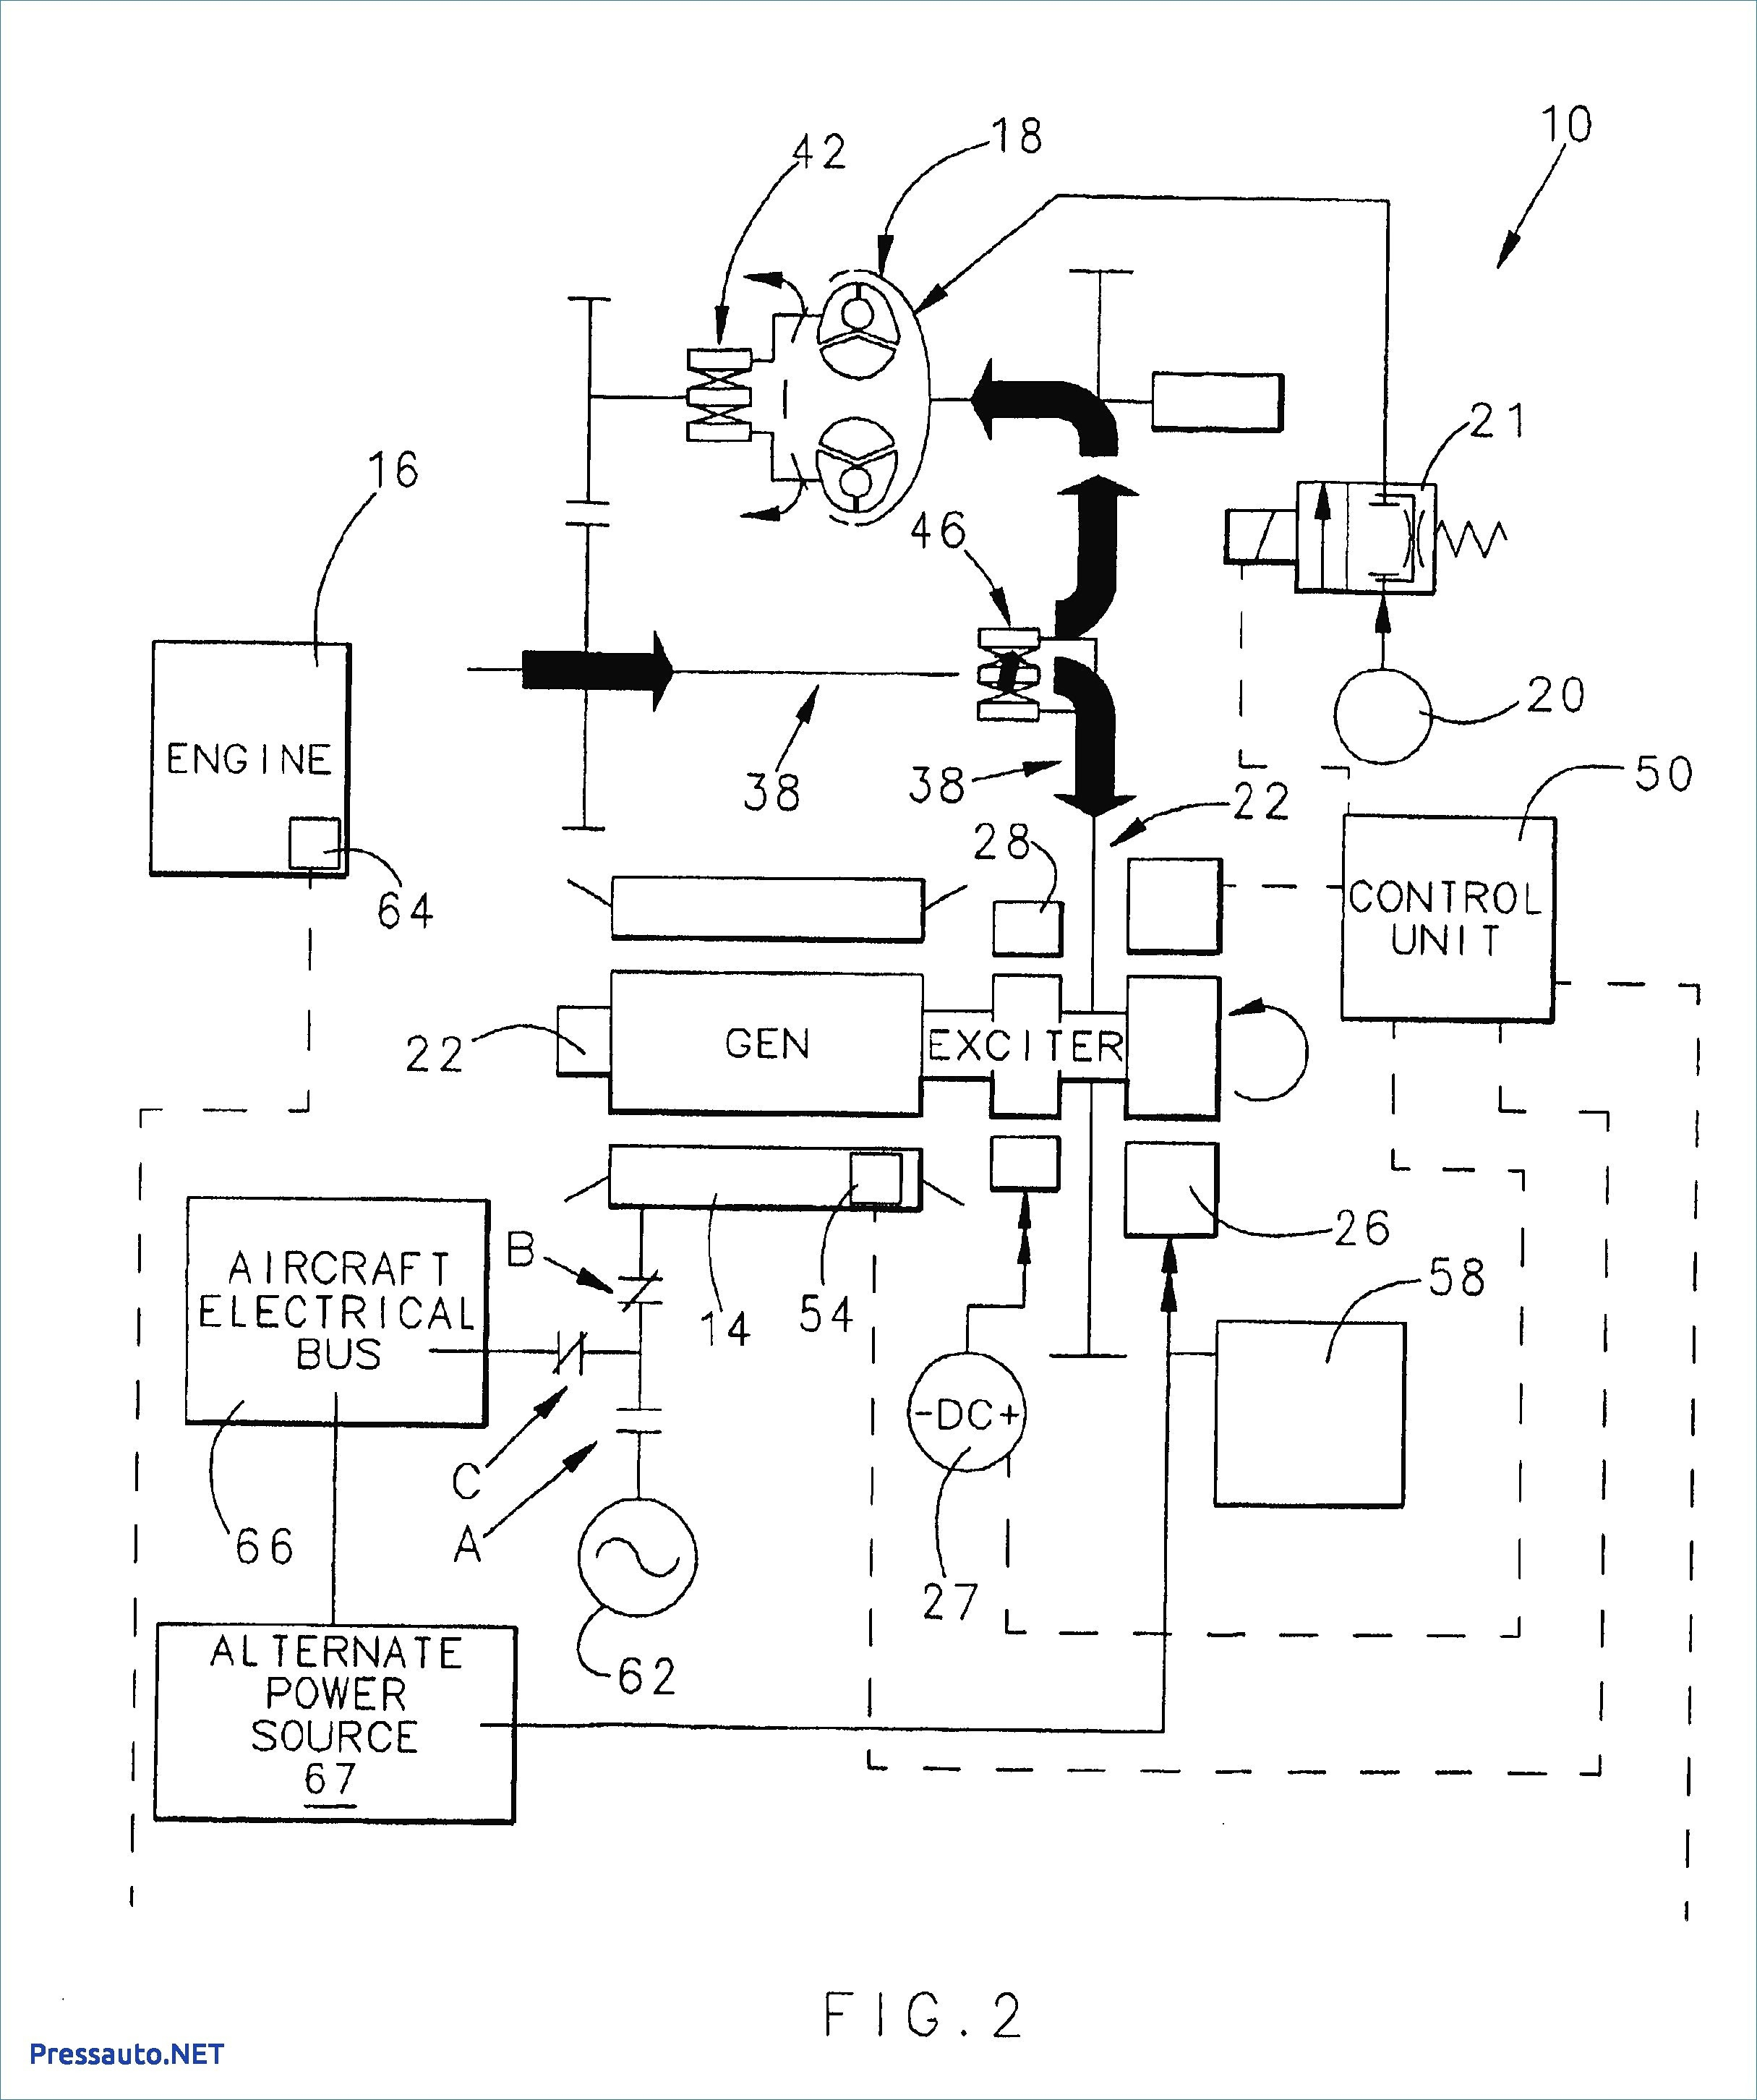 Wiring Diagram For Delco Alternator